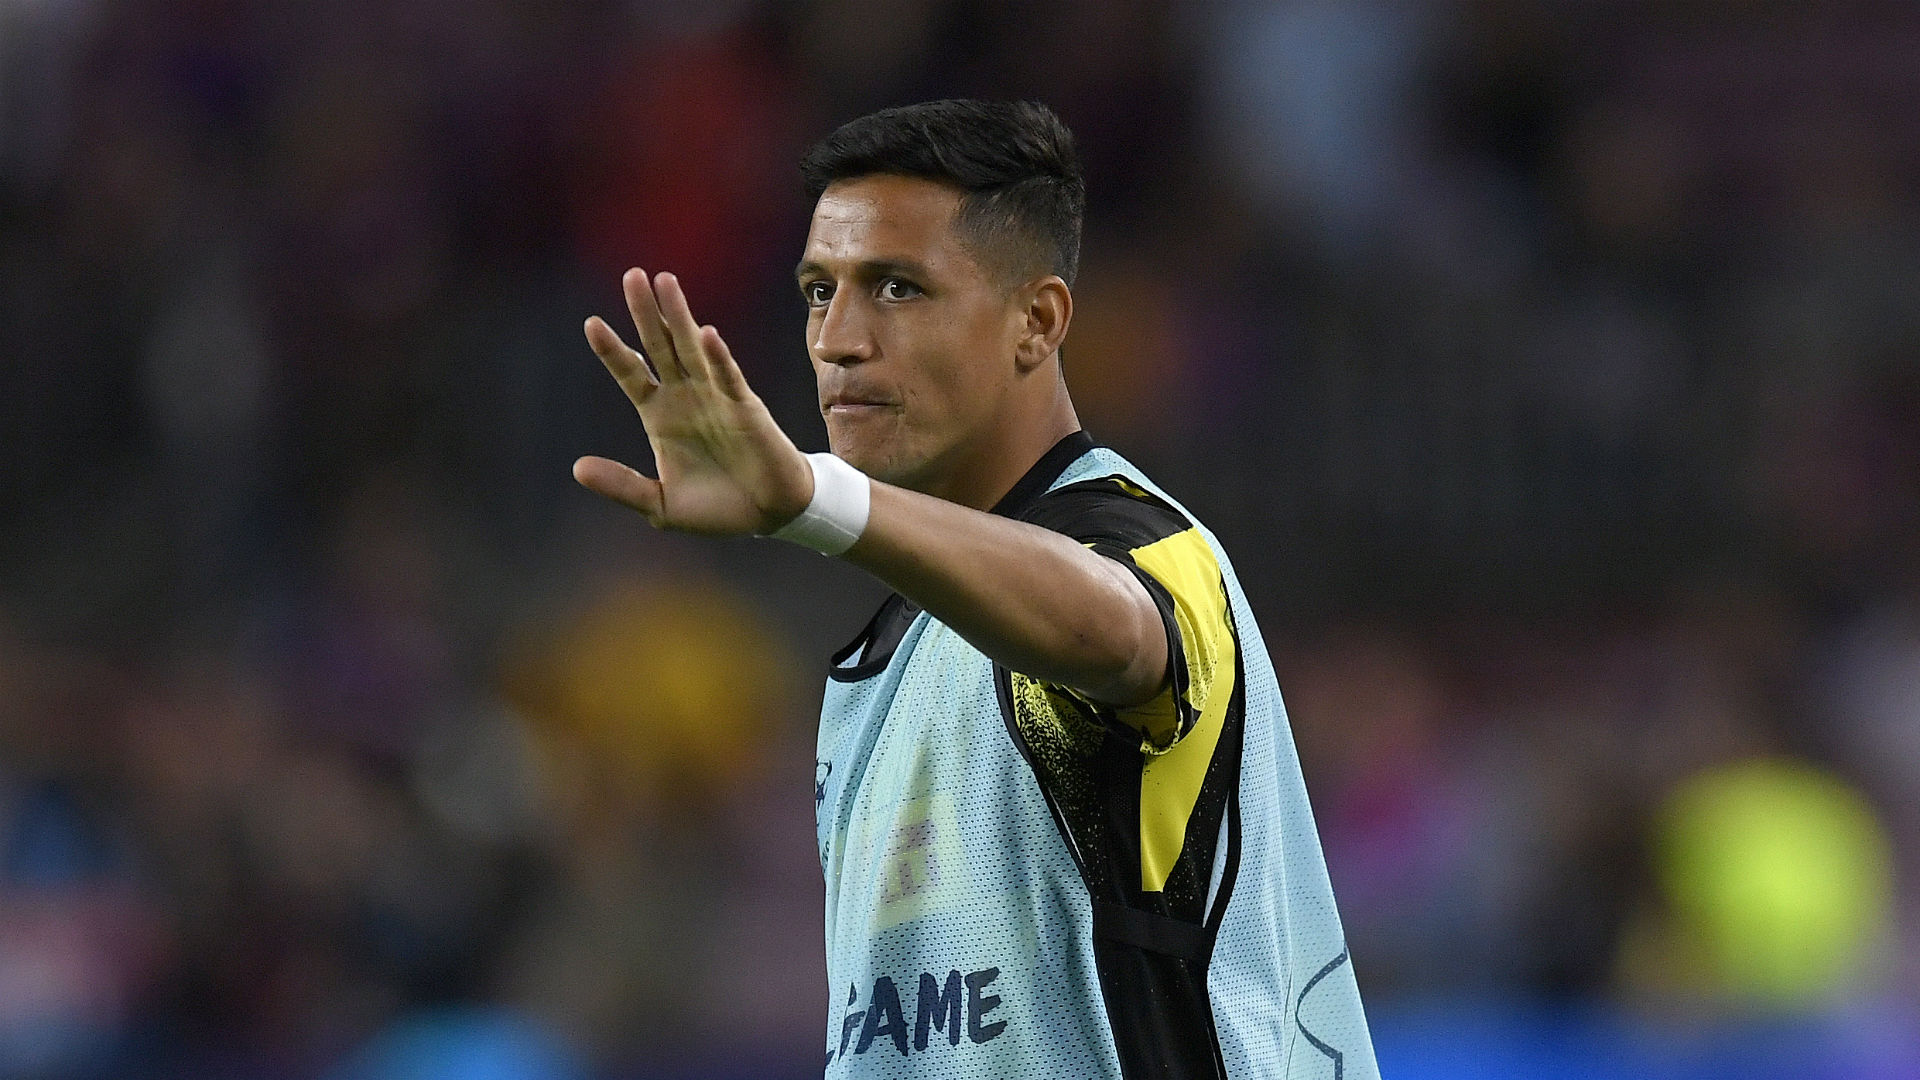 Sanchez may require surgery on ankle injury, Inter confirm